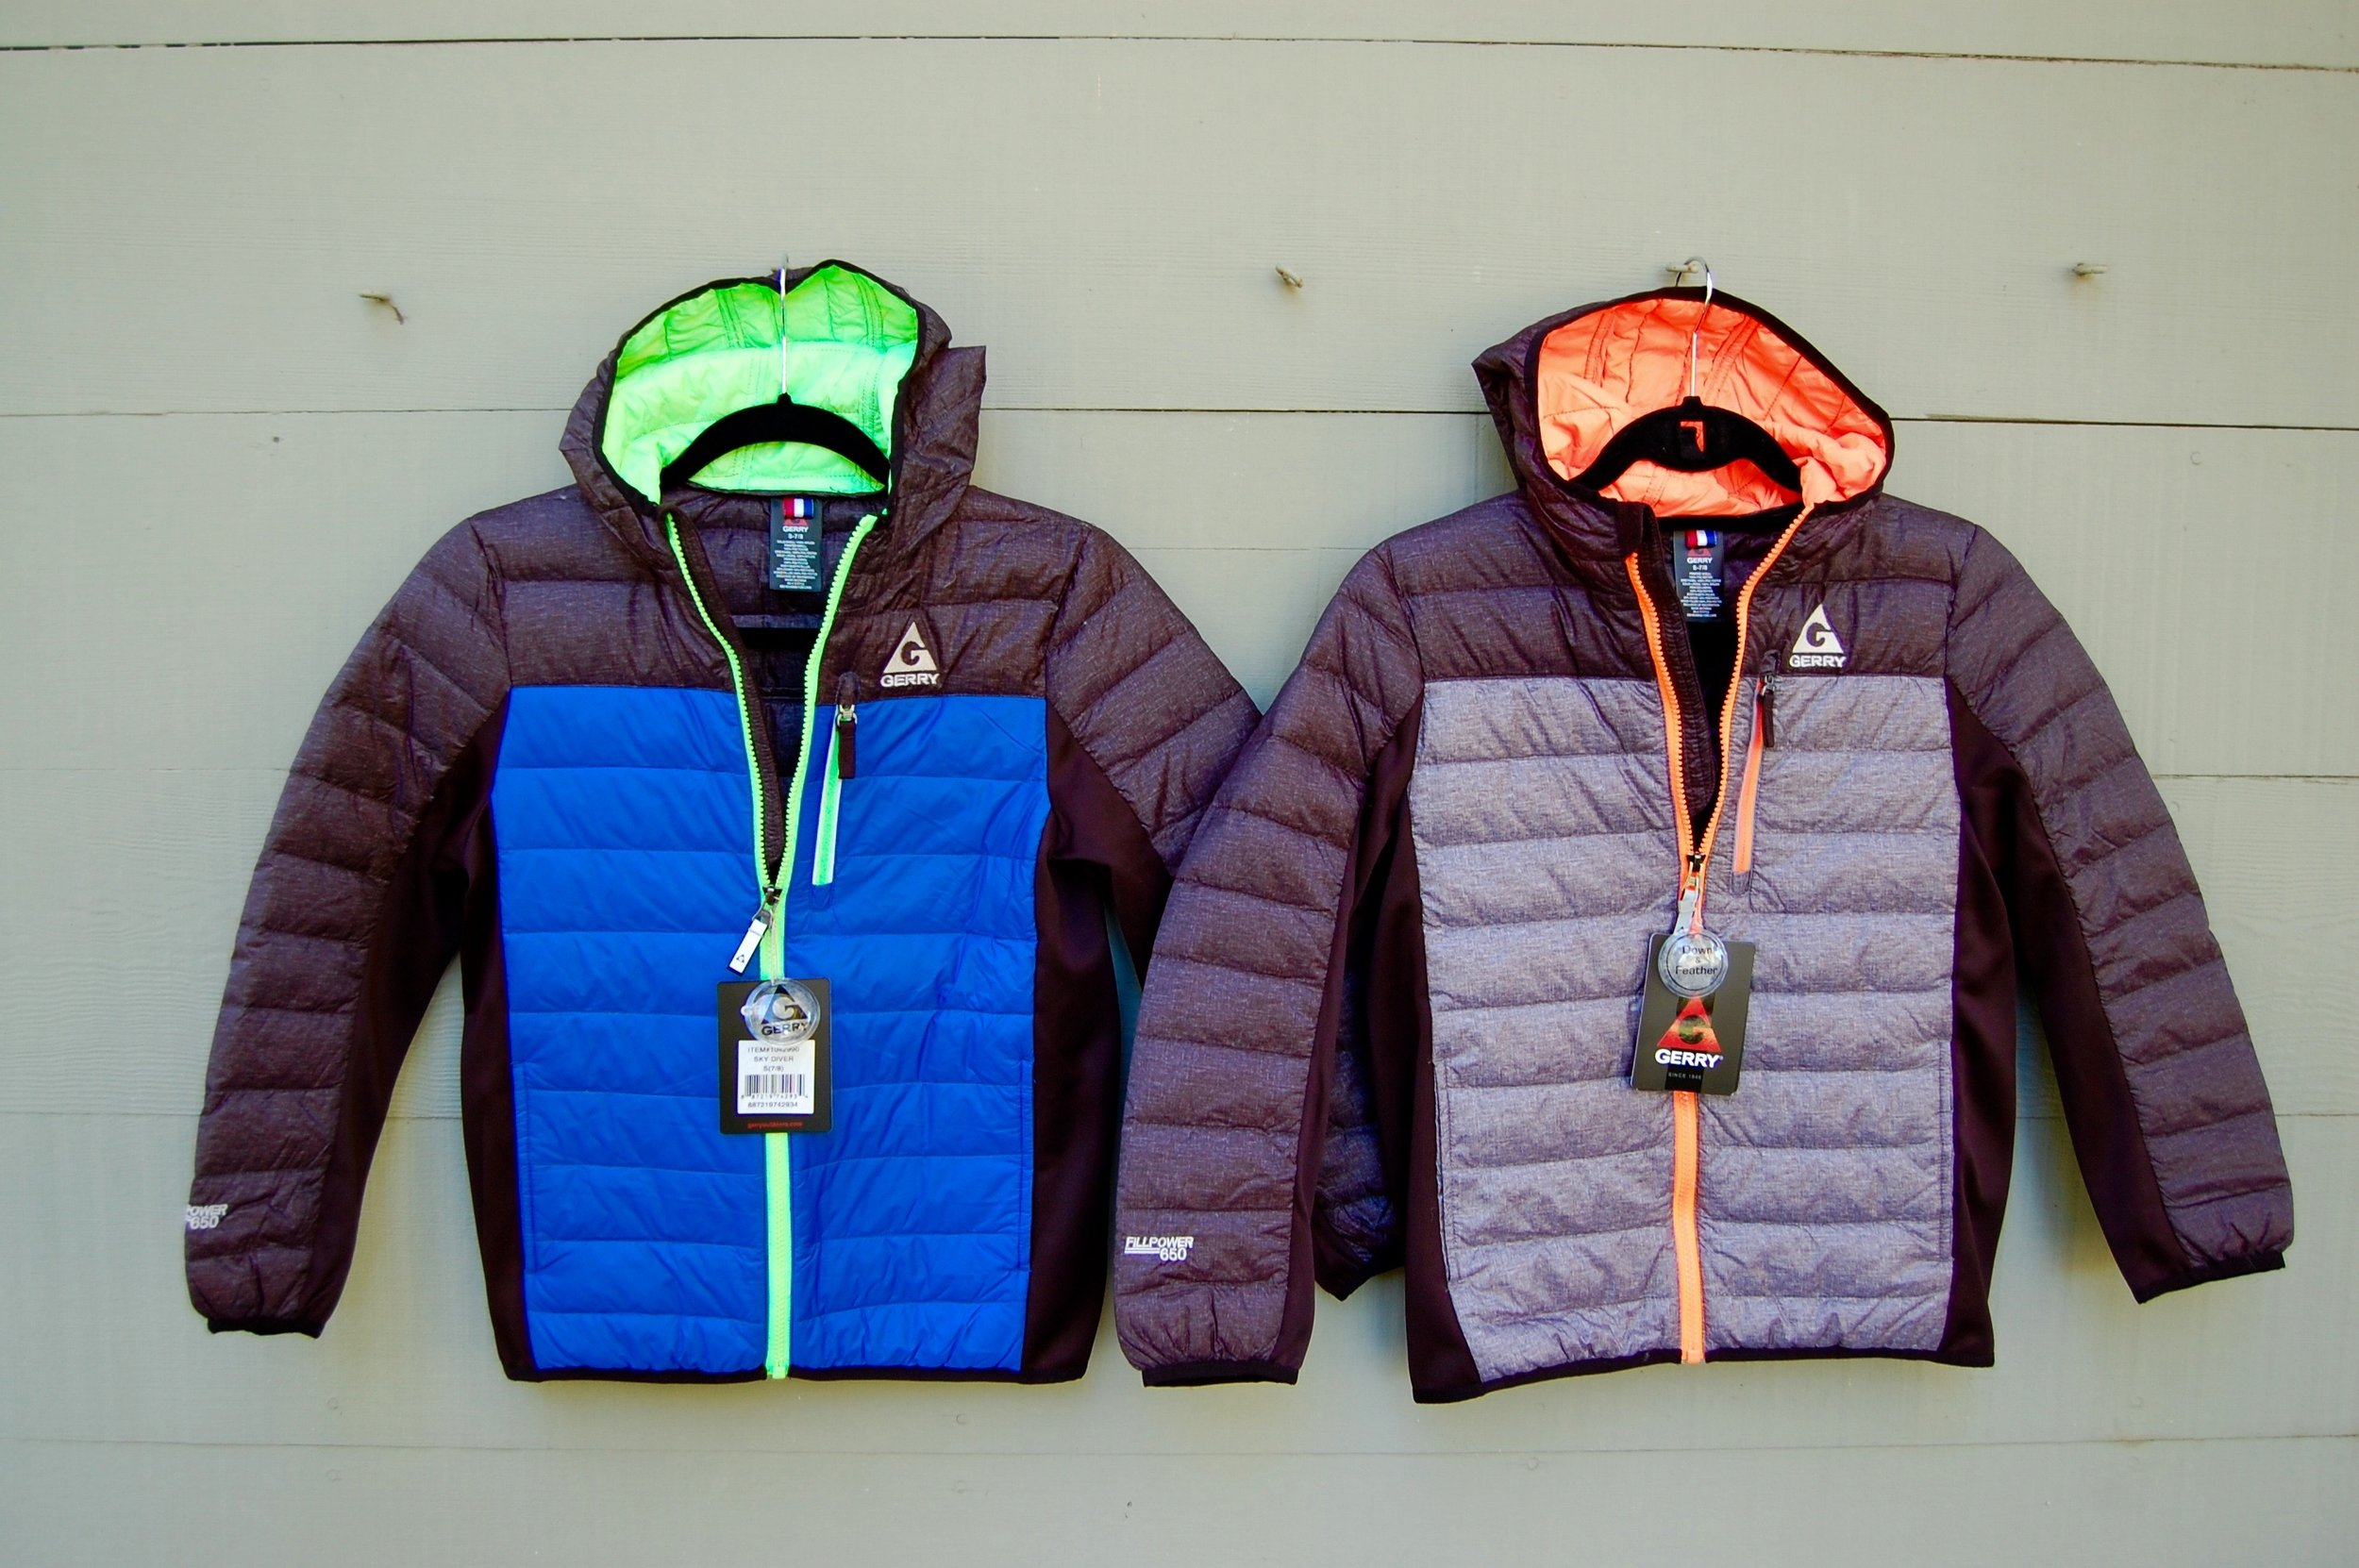 Gerry Down Jackets for Kids